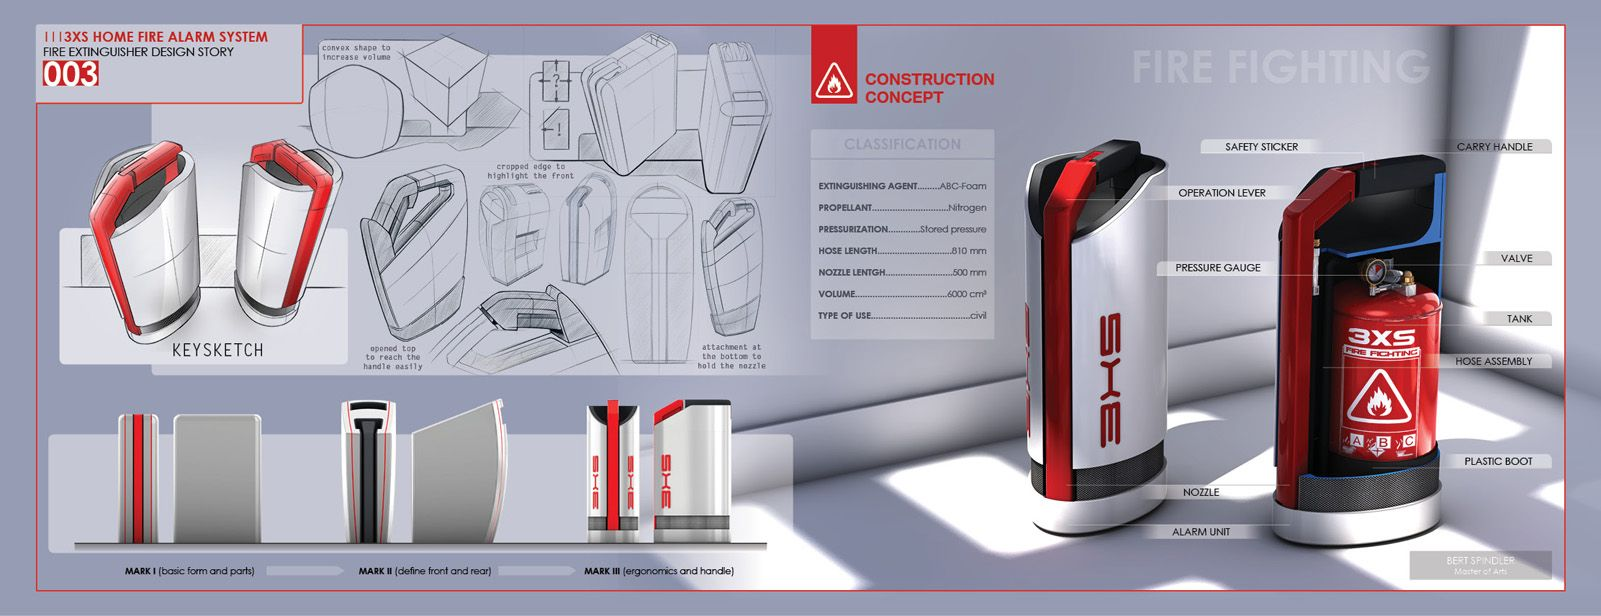 3xs Home Fire Alarm System Theme Futuristic Firefighter Products Engines Diagram Traffic Cone Extinguisher Futurism